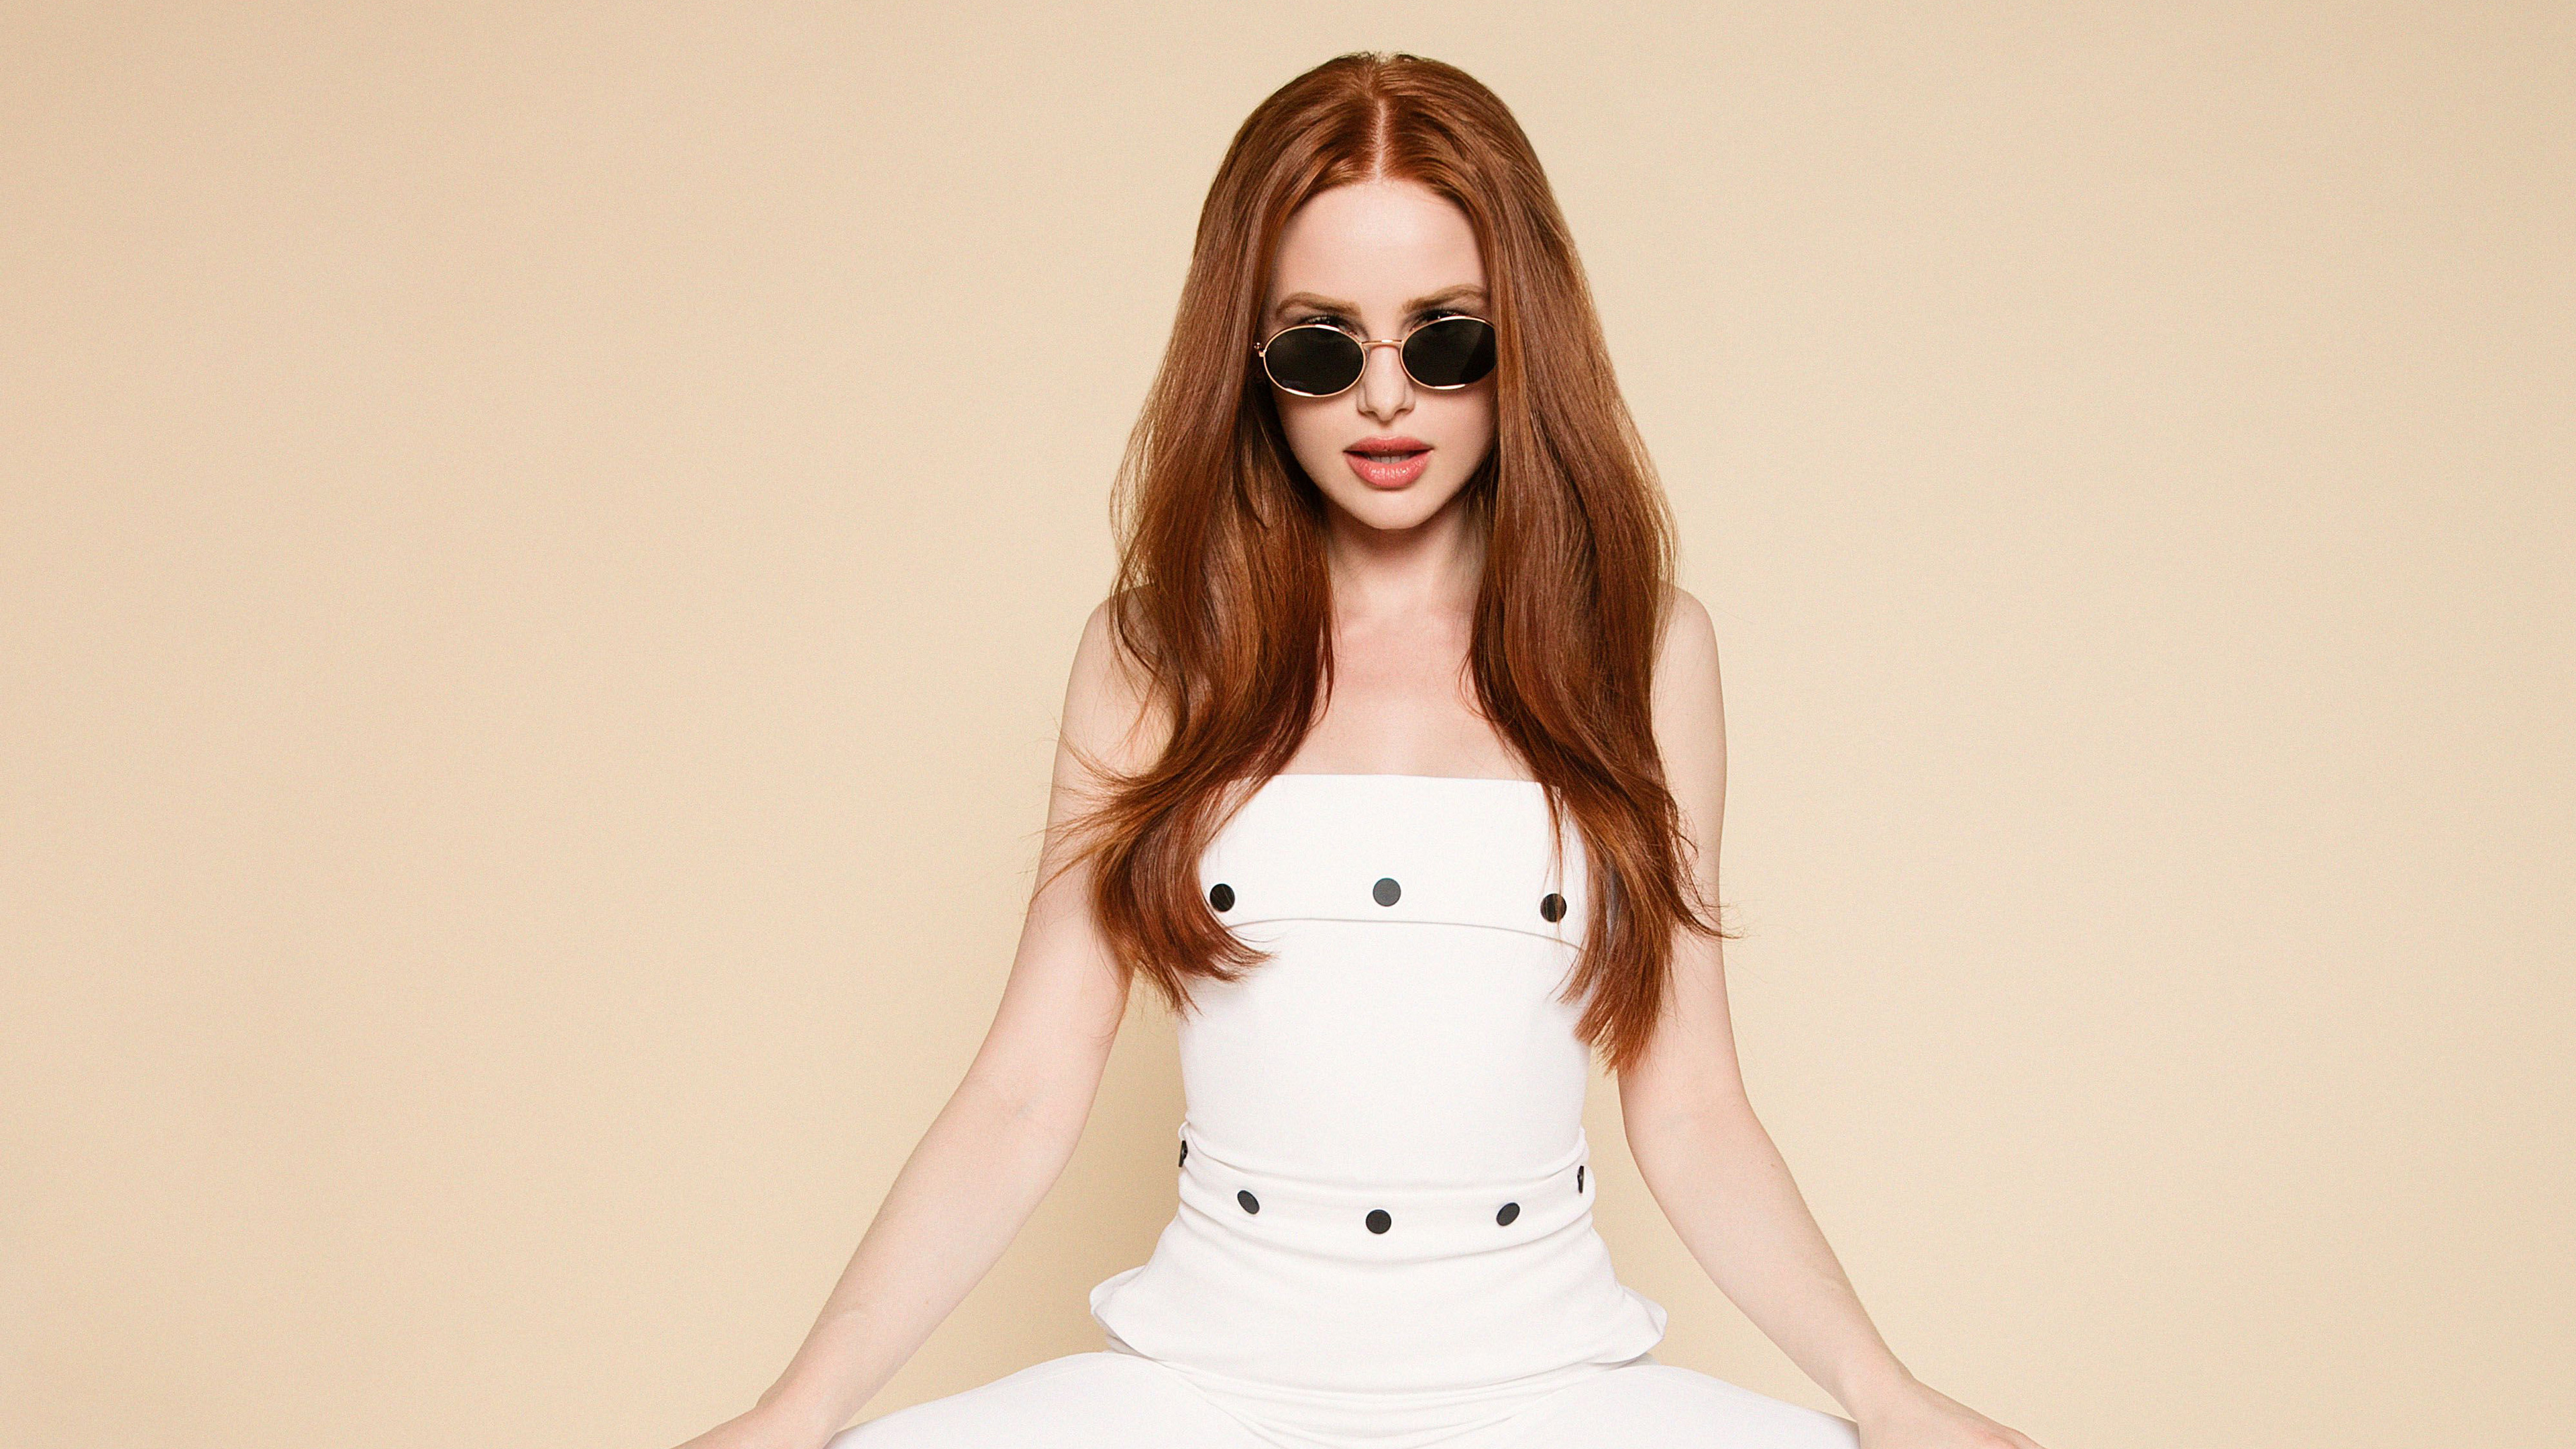 madelaine petsch photoshoot for prive revaux 2019 1538942804 - Madelaine Petsch Photoshoot For Prive Revaux 2019 - madelaine petsch wallpapers, hd-wallpapers, girls wallpapers, celebrities wallpapers, 4k-wallpapers